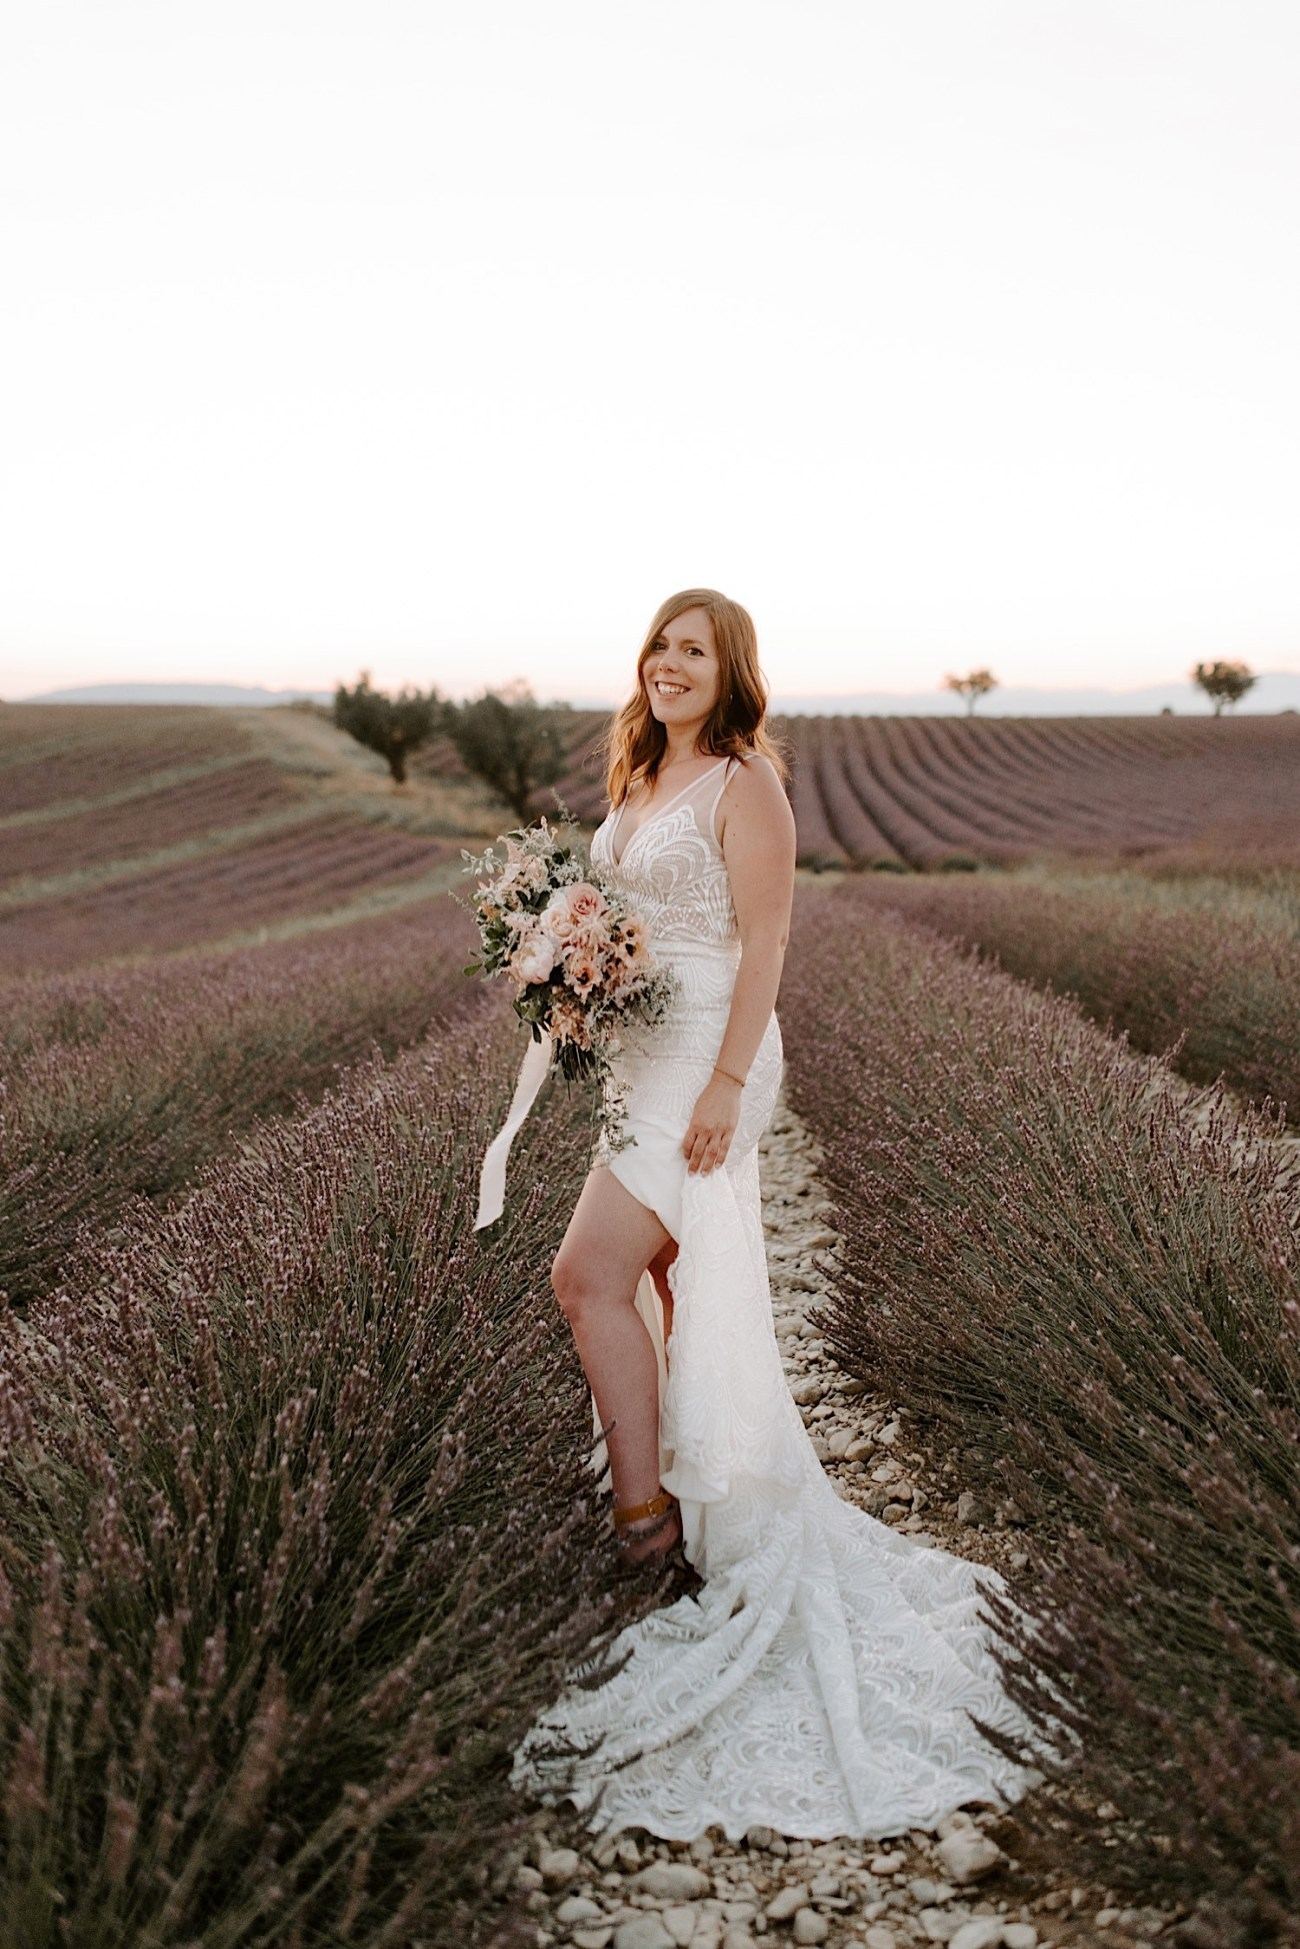 Valensole Wedding Photos Lavender Field Wedding Provence Wedding French Wedding Photographer Destination Wedding France Anais Possamai Photography 09